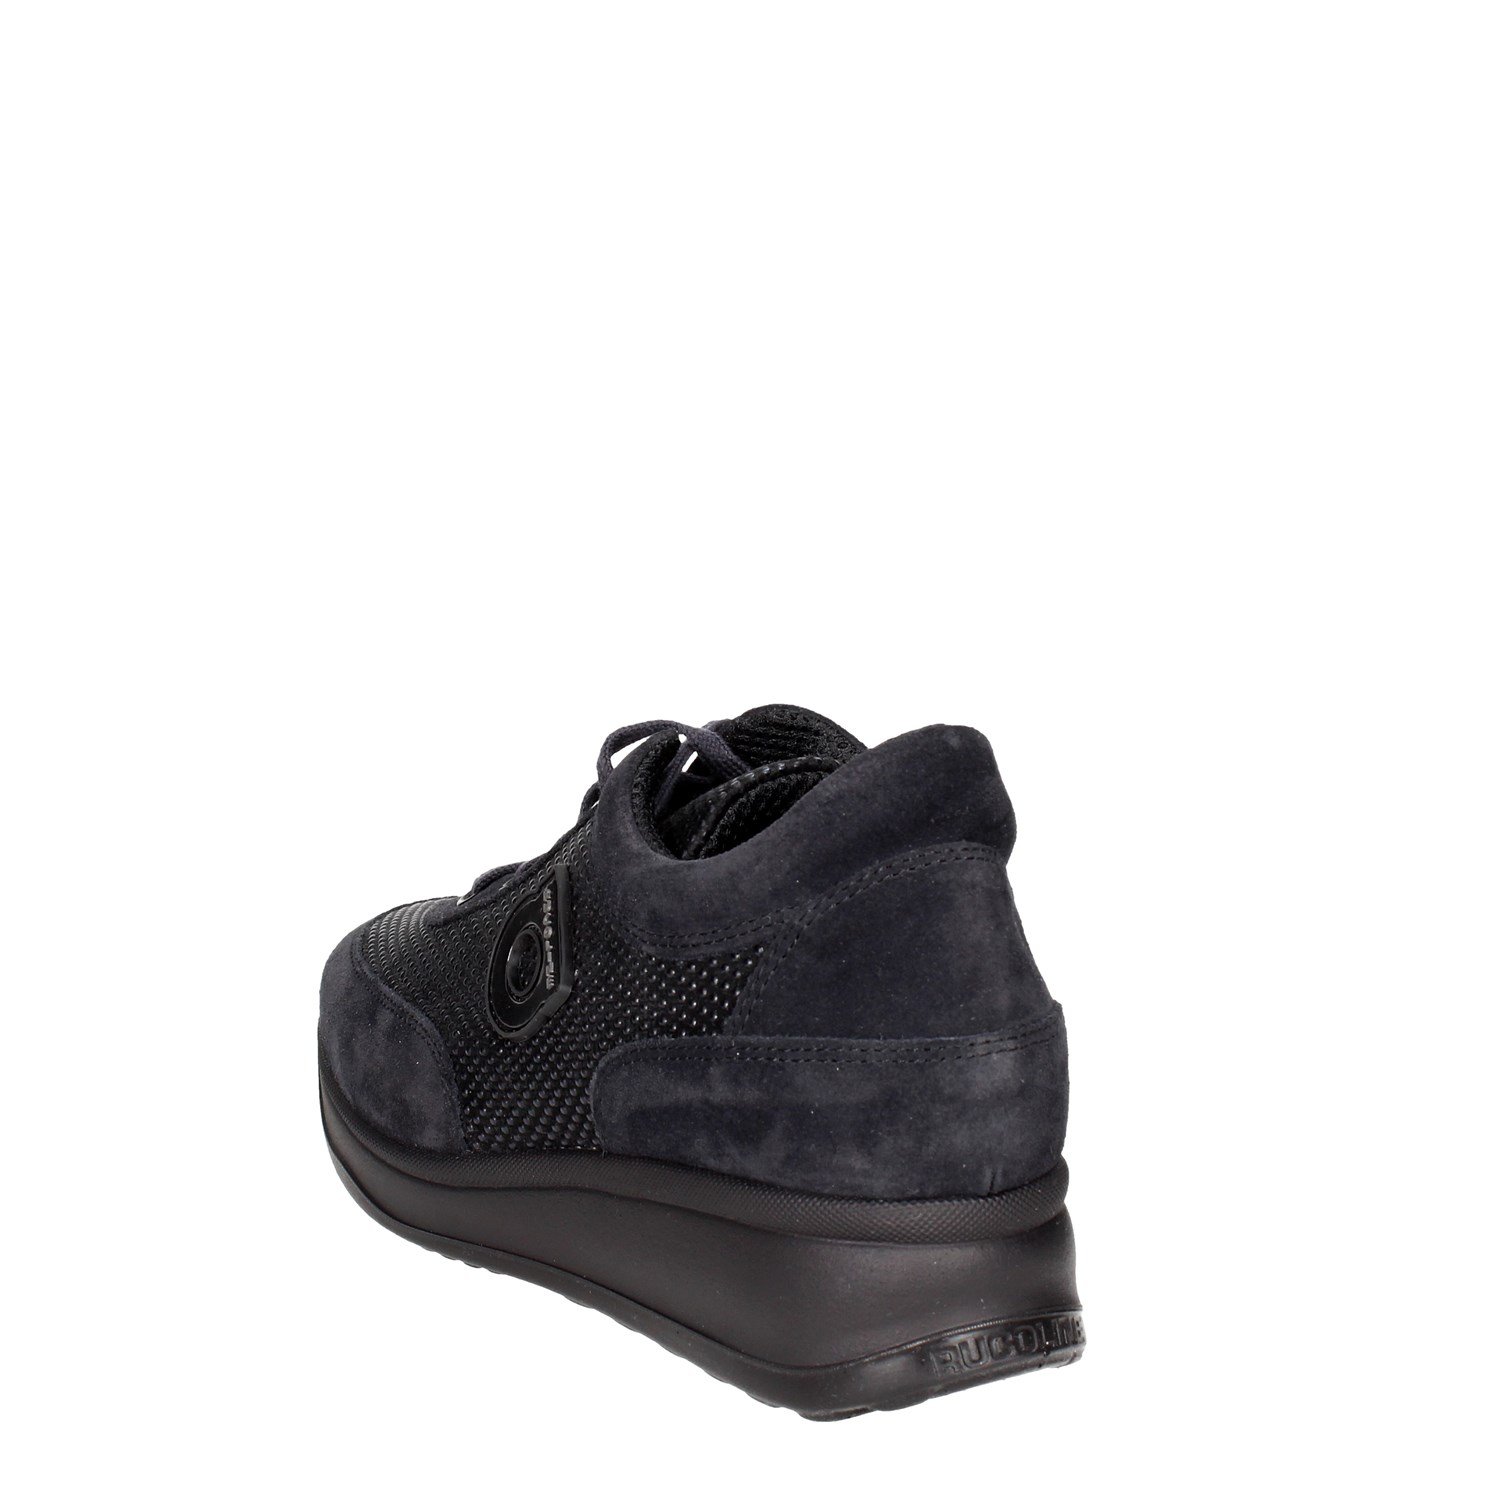 Donna Autunno Bassa Blu 1304 By Rucoline 13 inverno Agile Sneakers wxR6AFwq